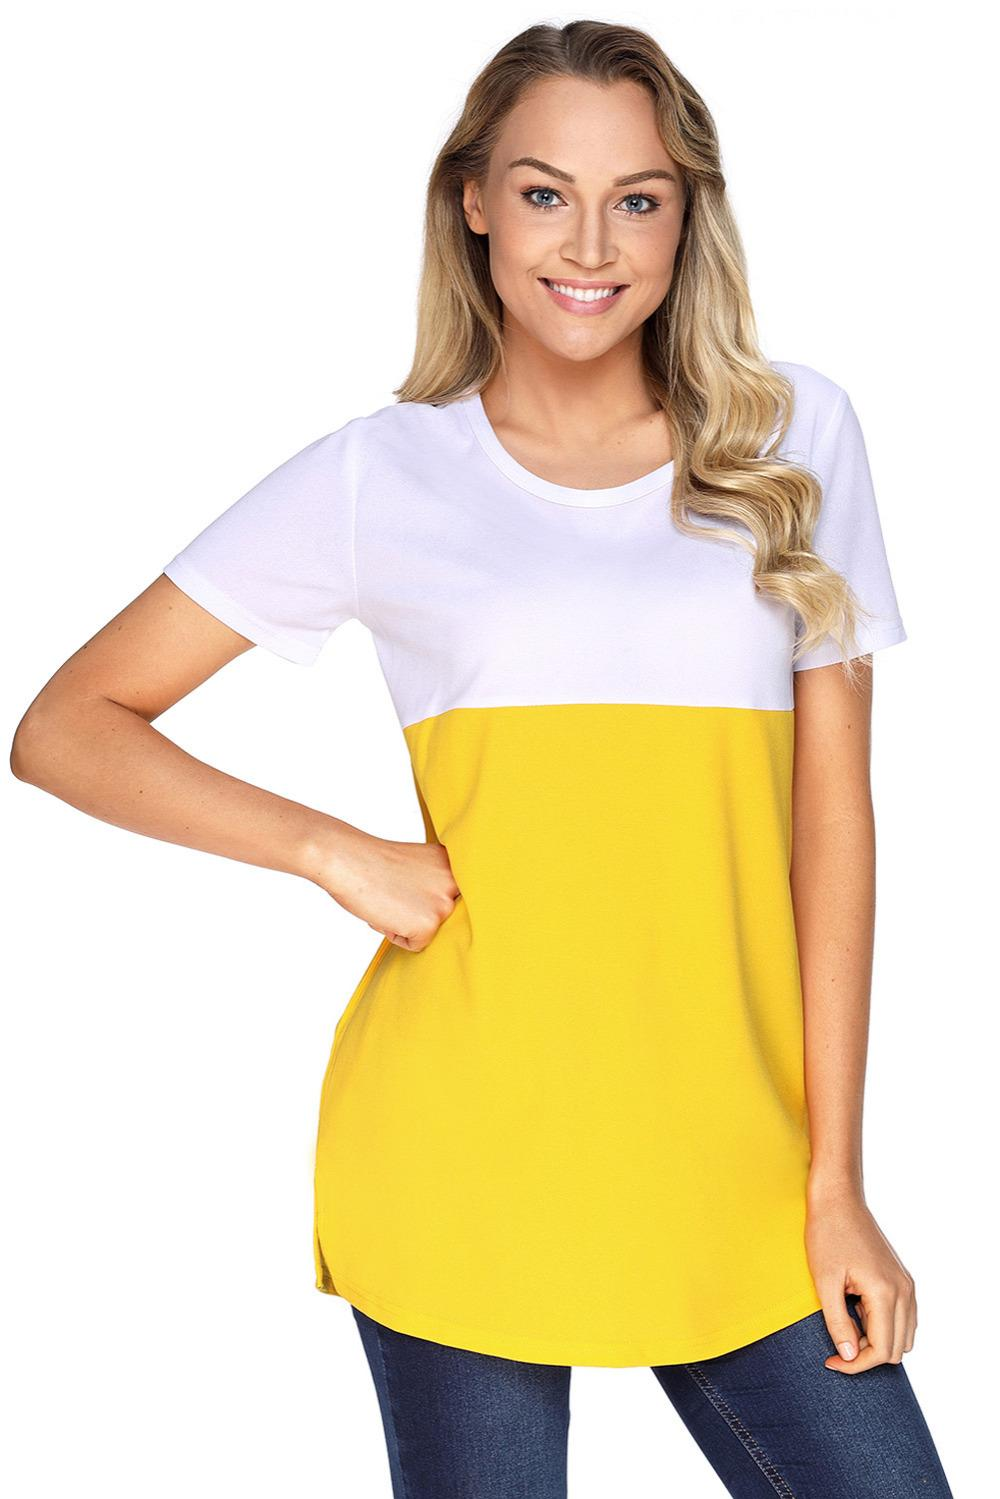 867a13fc9af Summer Women S Clothes Lady Plus Size S M L XL XXL T Shirt Modern Ladies  Female Mustard White Colorblock Pocket Tunic Top 250838 Funny T Shirts For  Women ...